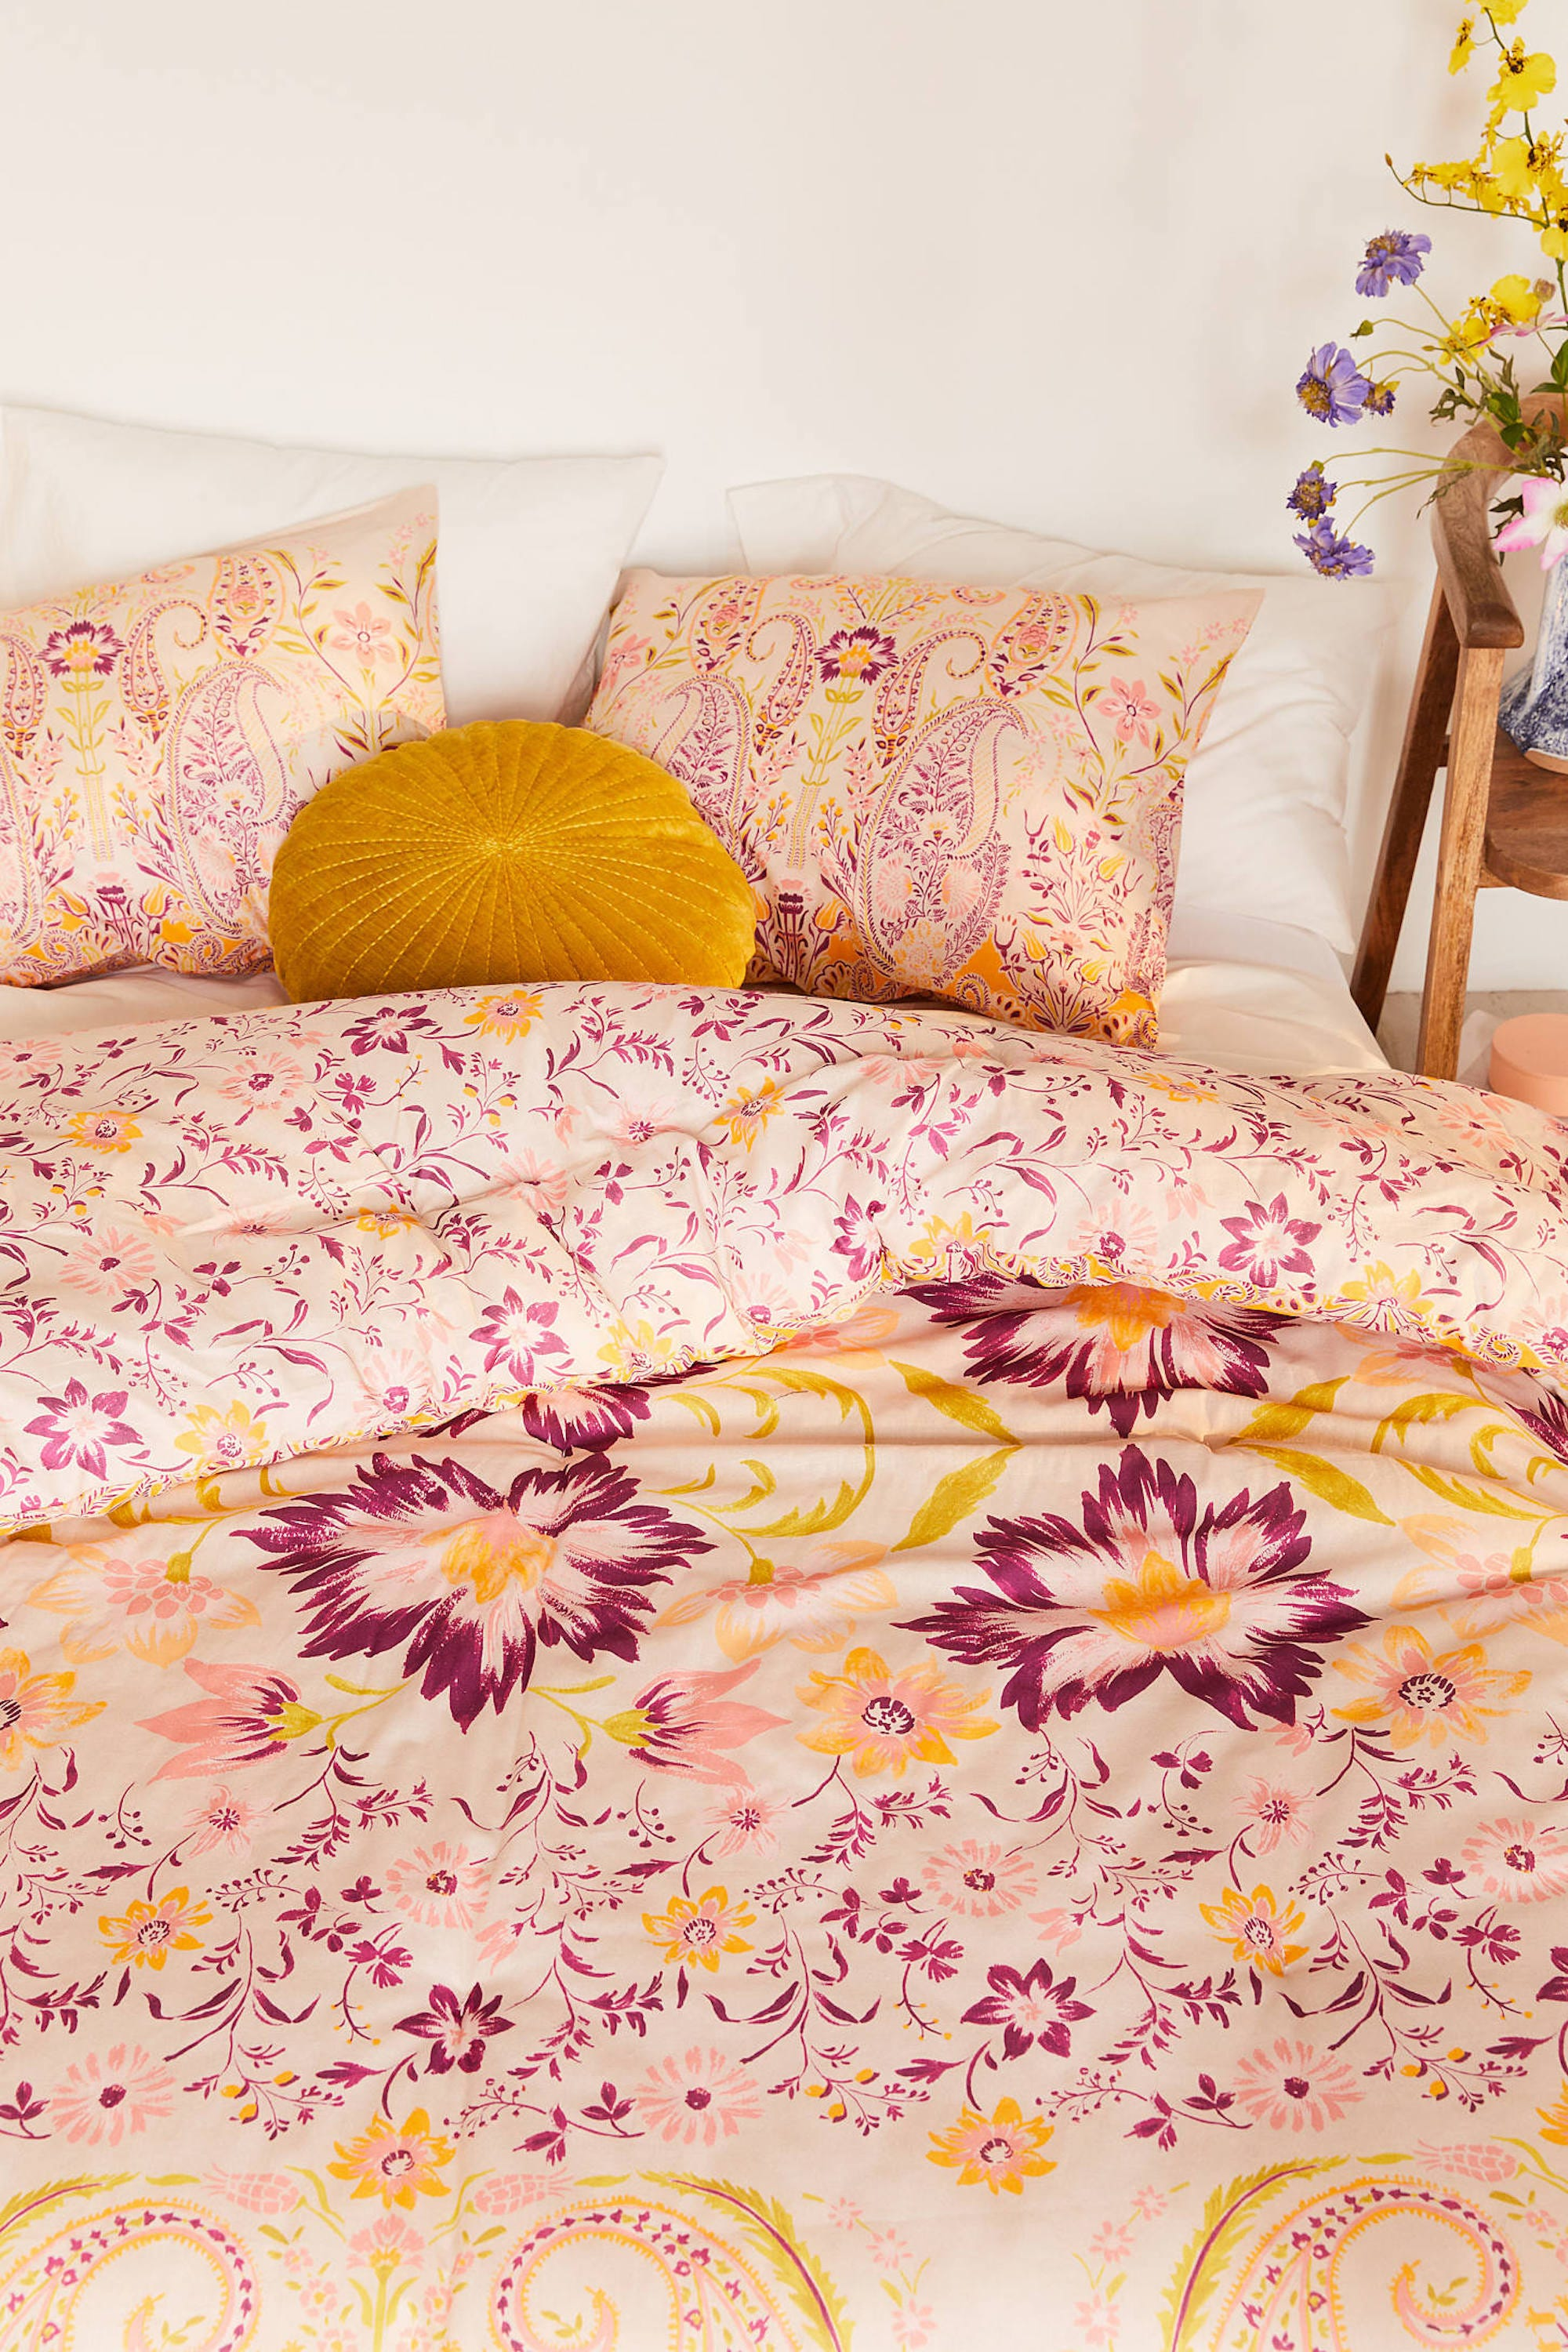 Best Bedding And Sheets Online Shopping Sales,Shades Of Purple Hair Color Chart